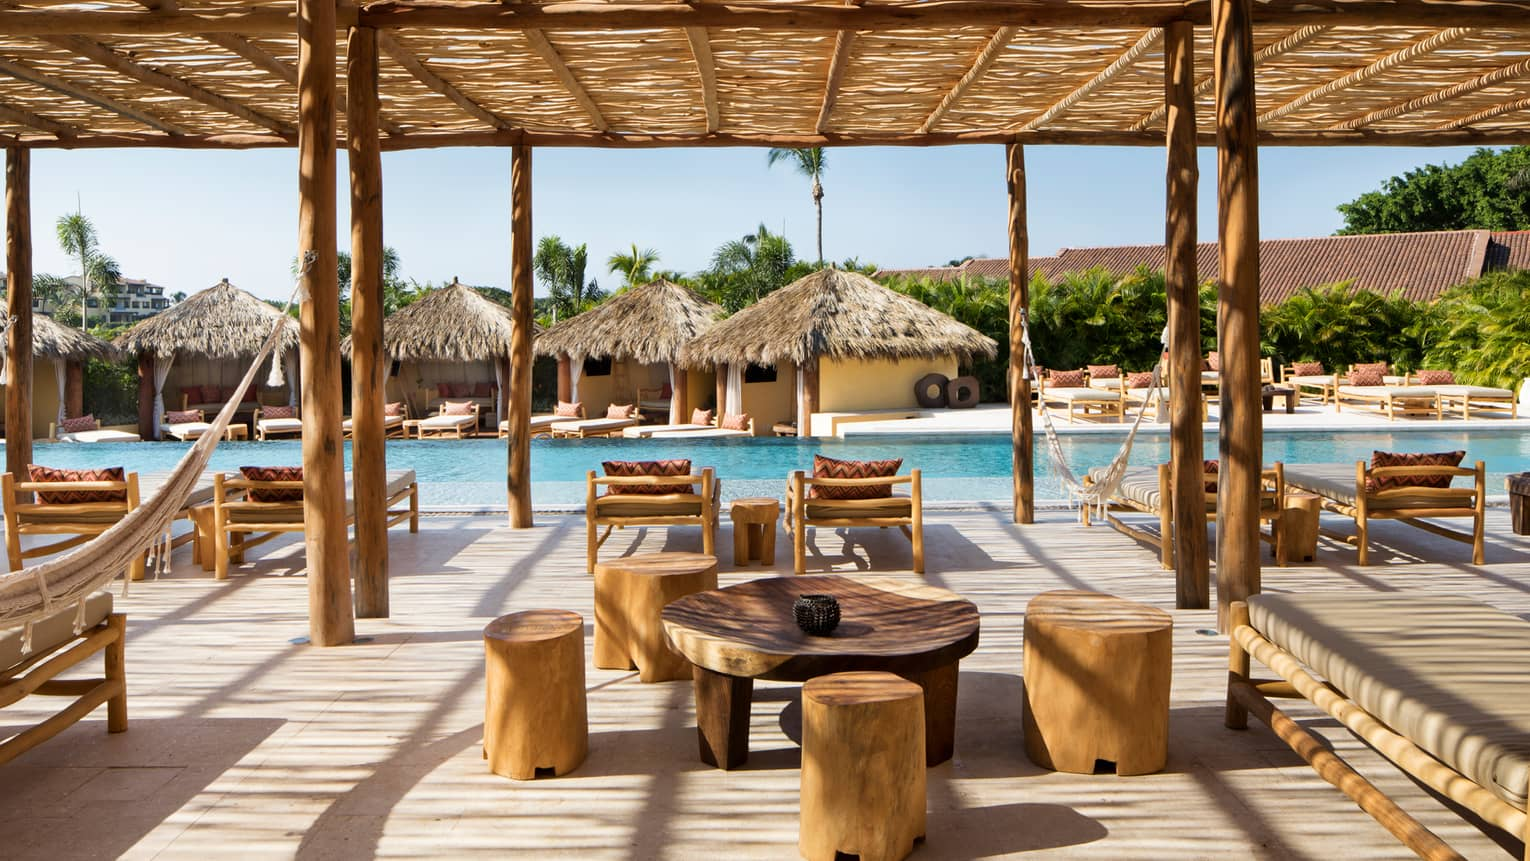 Tamai Pool Complex outdoor dining lounge with rustic wood stools and table, hammocks, lounge chairs